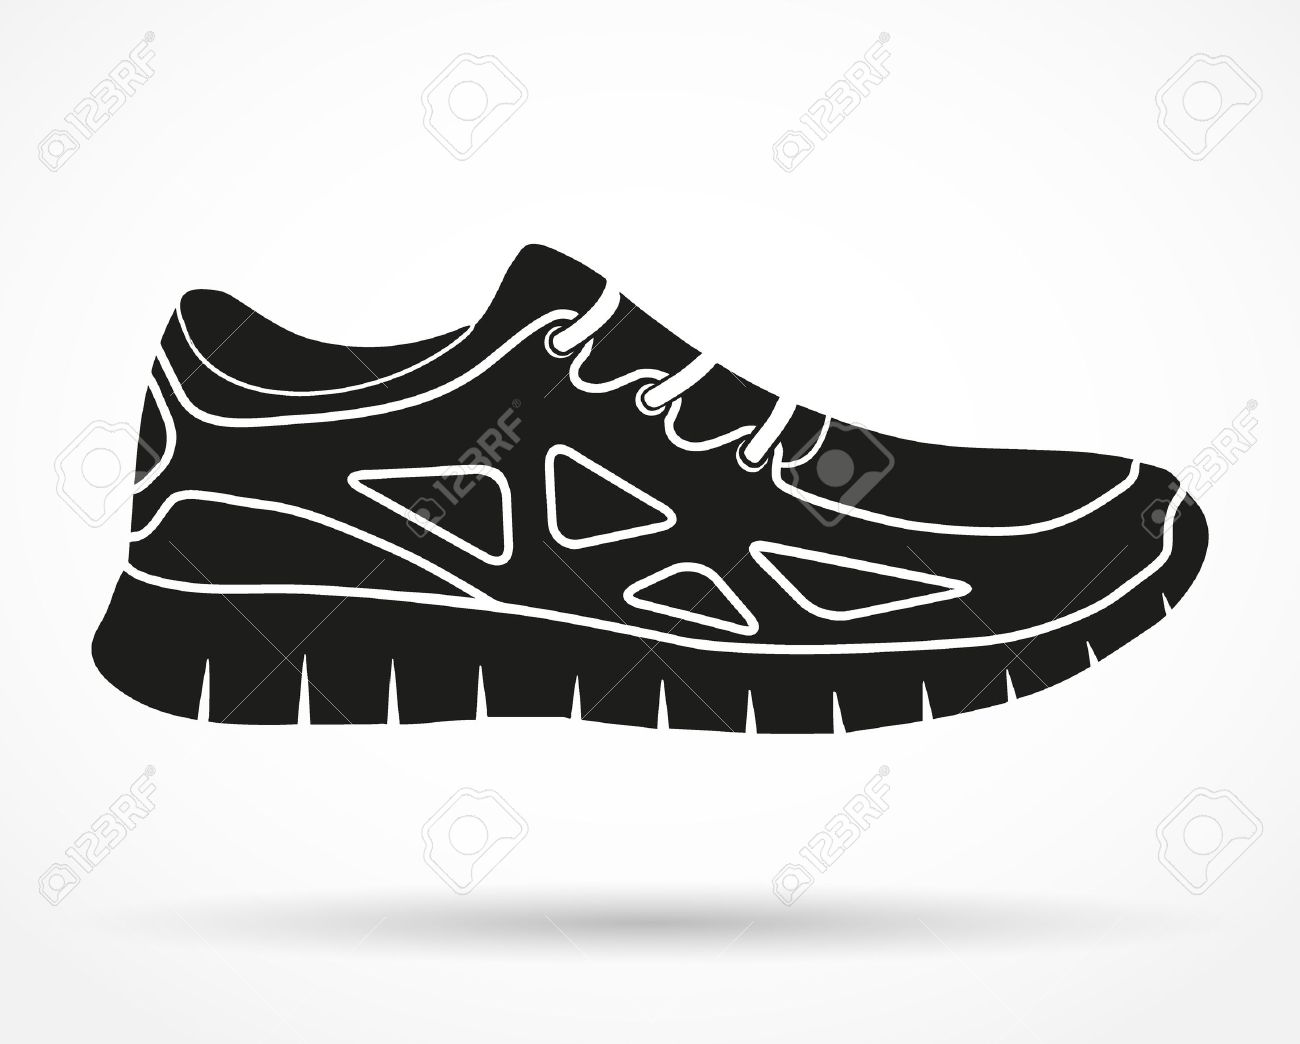 silhouette symbol of shoes running and fitness sneakers original rh 123rf com running shoe vector image running shoe sole vector